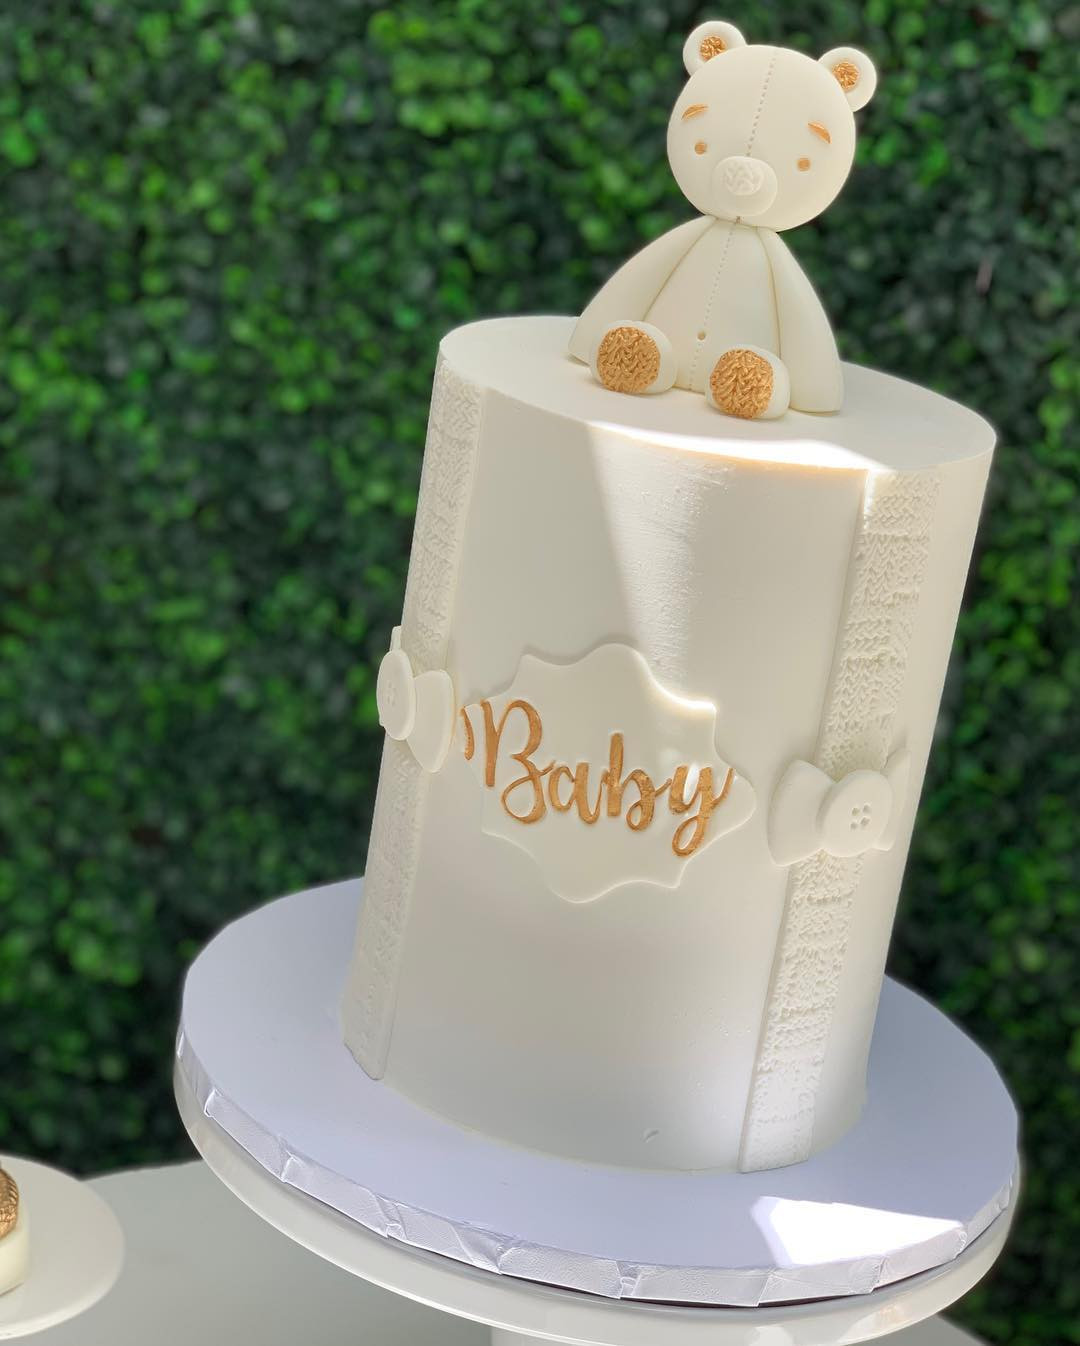 42 Baby Shower Ideas For the Modern Mama,all white baby shower outfit,all white baby shower invitations,all white baby shower dress,white baby shower decorations